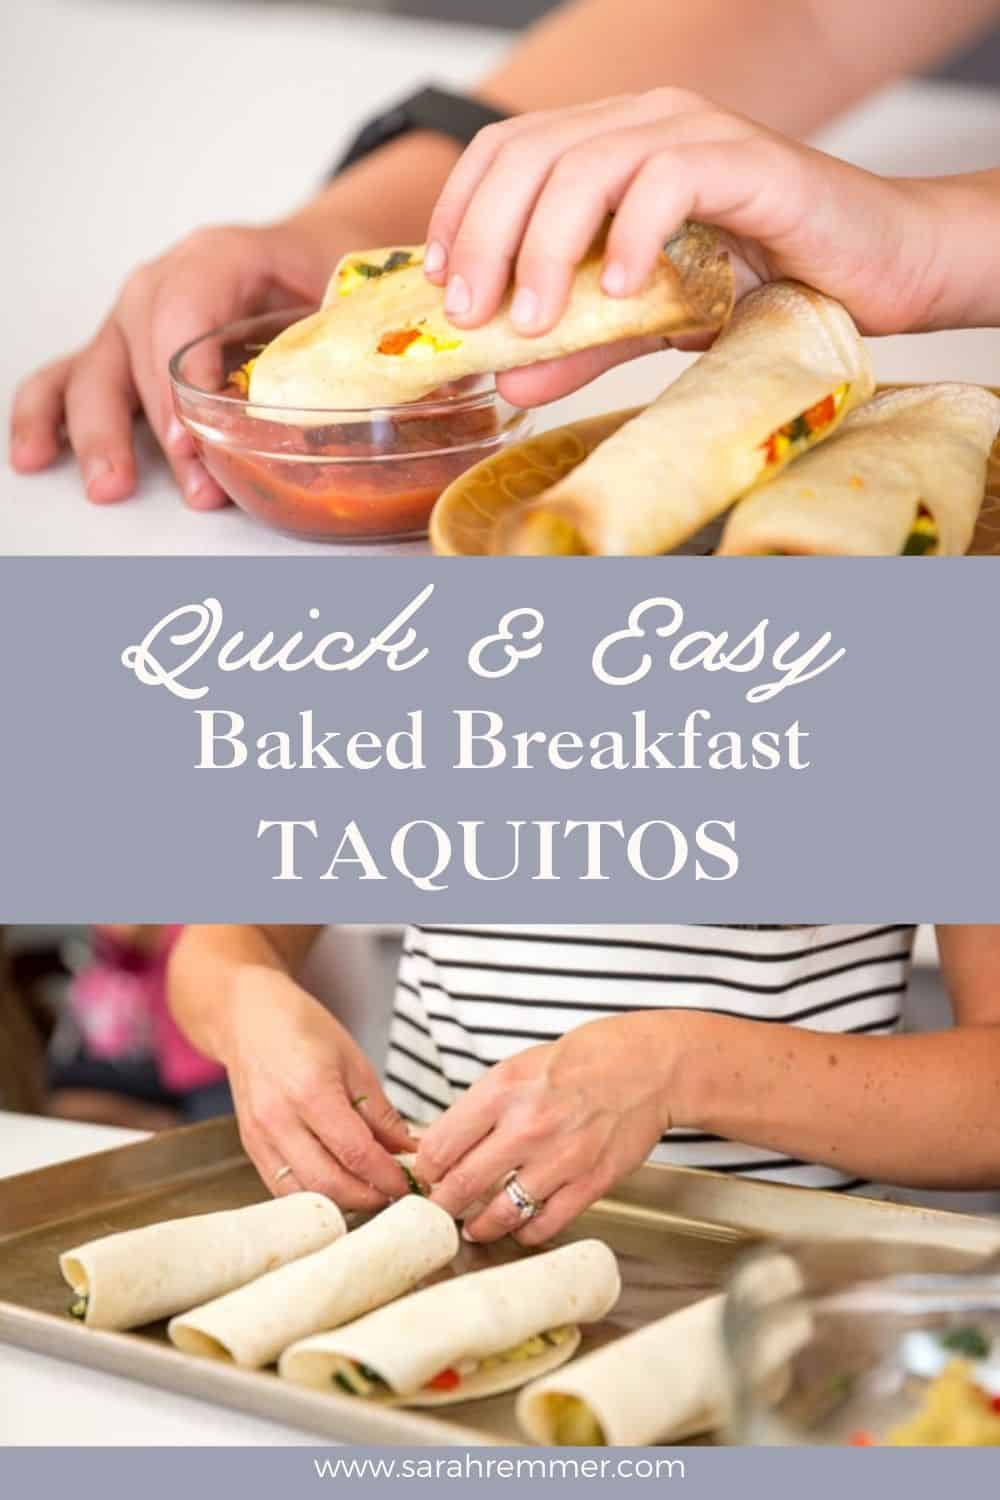 These easy breakfast taquitos are delicious, nutritious and freezable! Make a big batch to freeze for busy mornings.